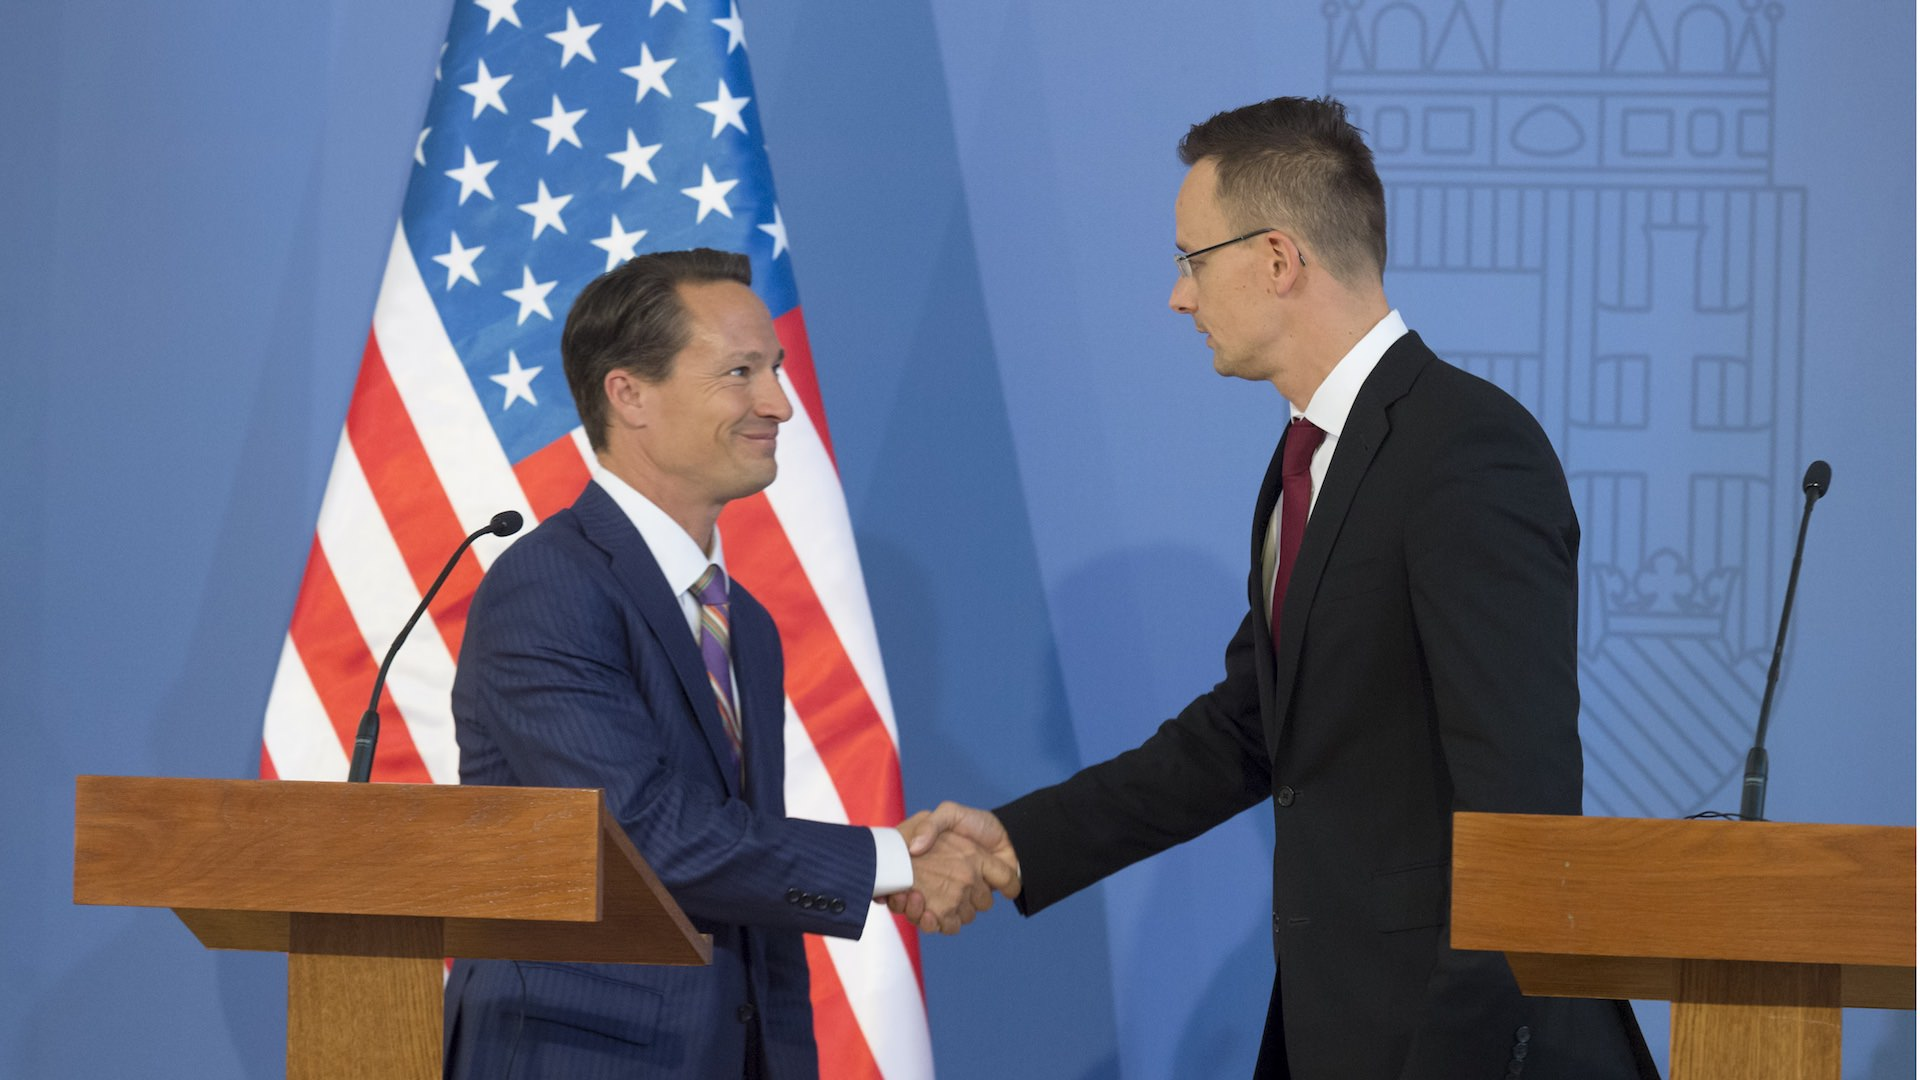 The Hungarian-American economic and business cooperation is a story of success